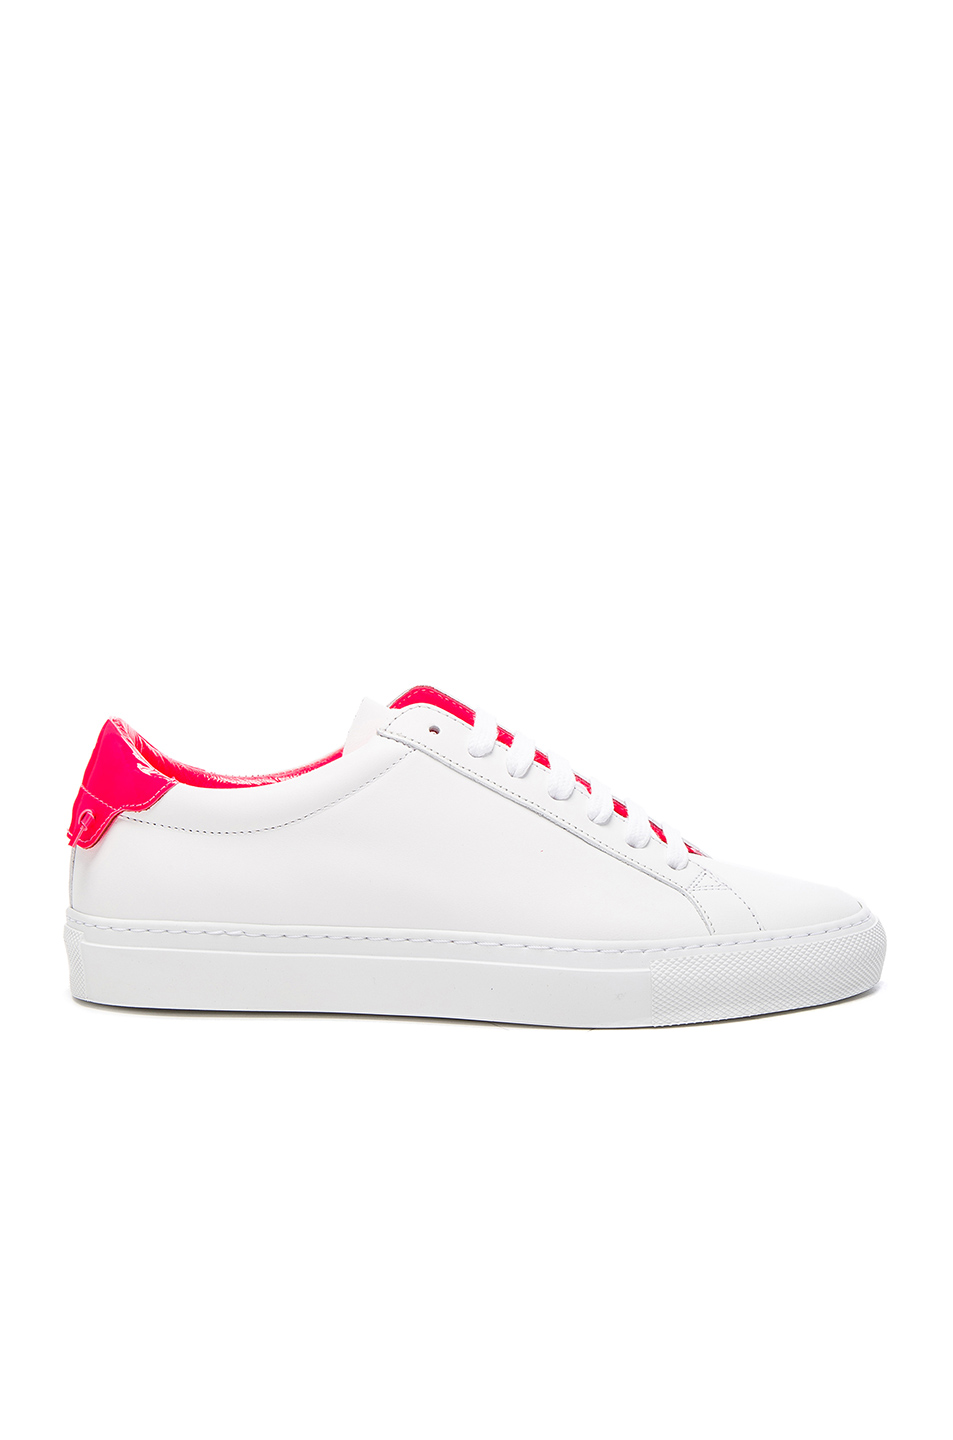 Givenchy Urban Street Low Sneaker in White,Pink,Neon